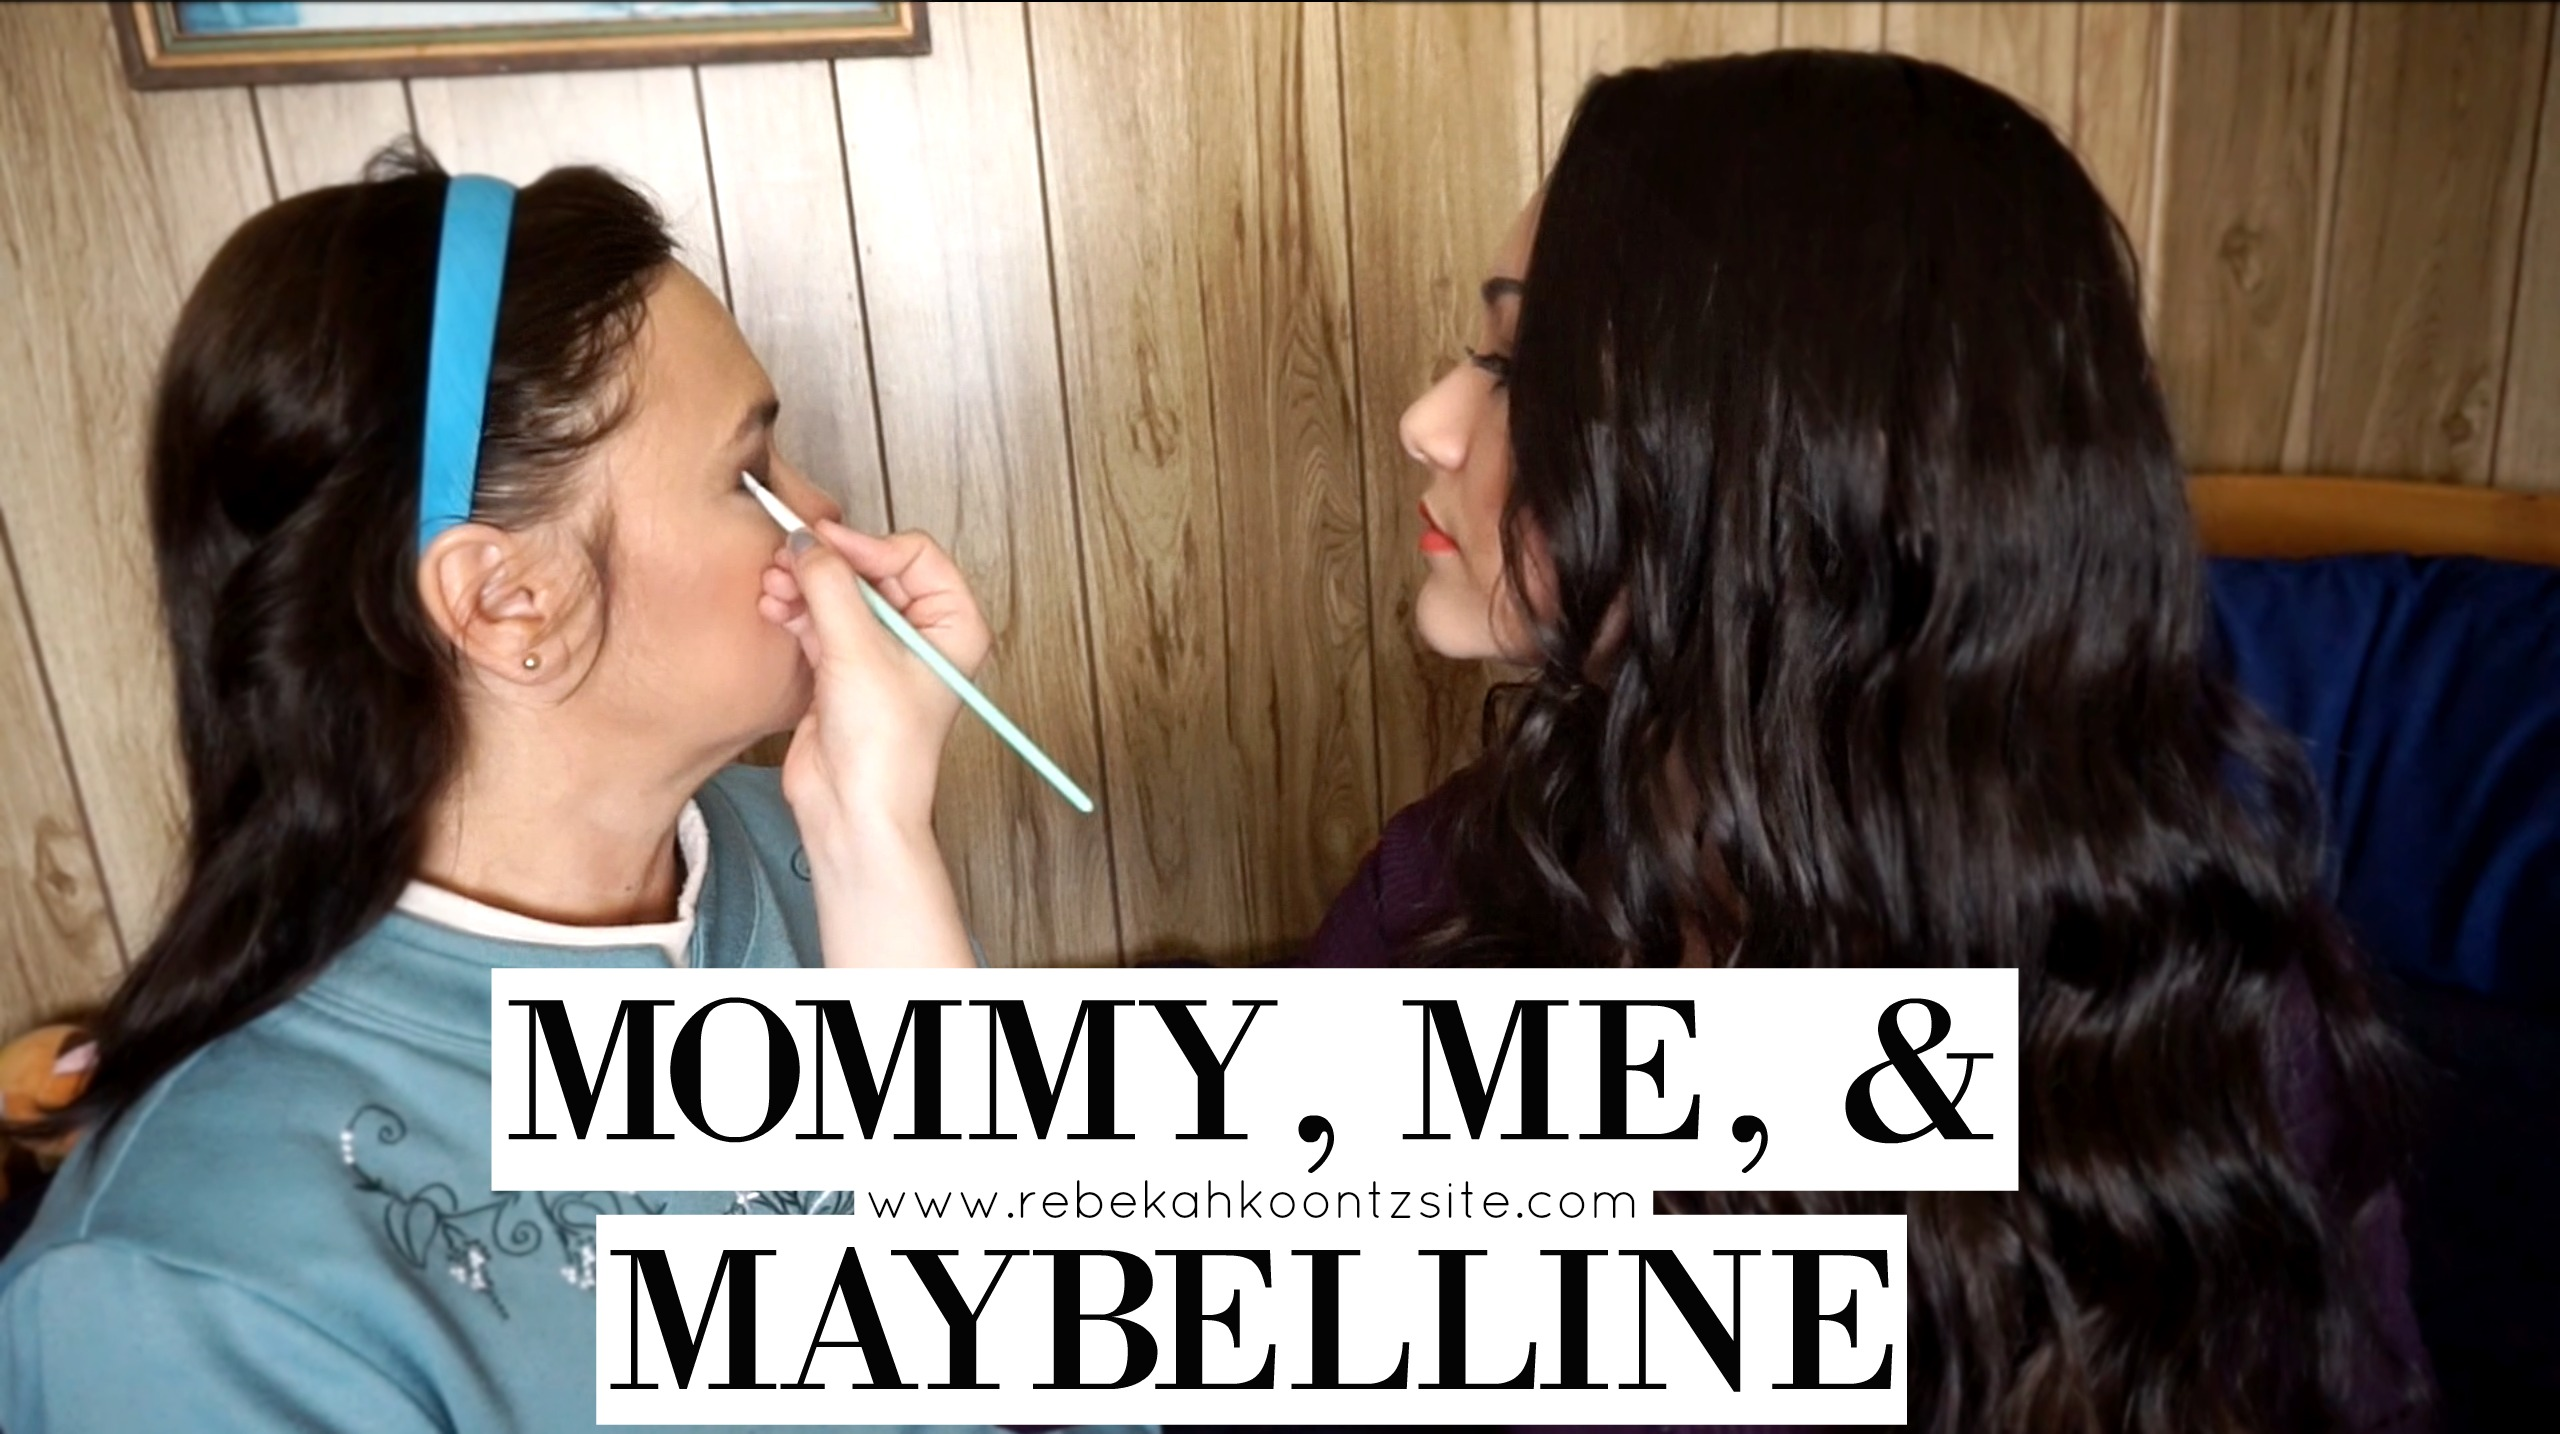 Mommy, me, and  maybelline 2